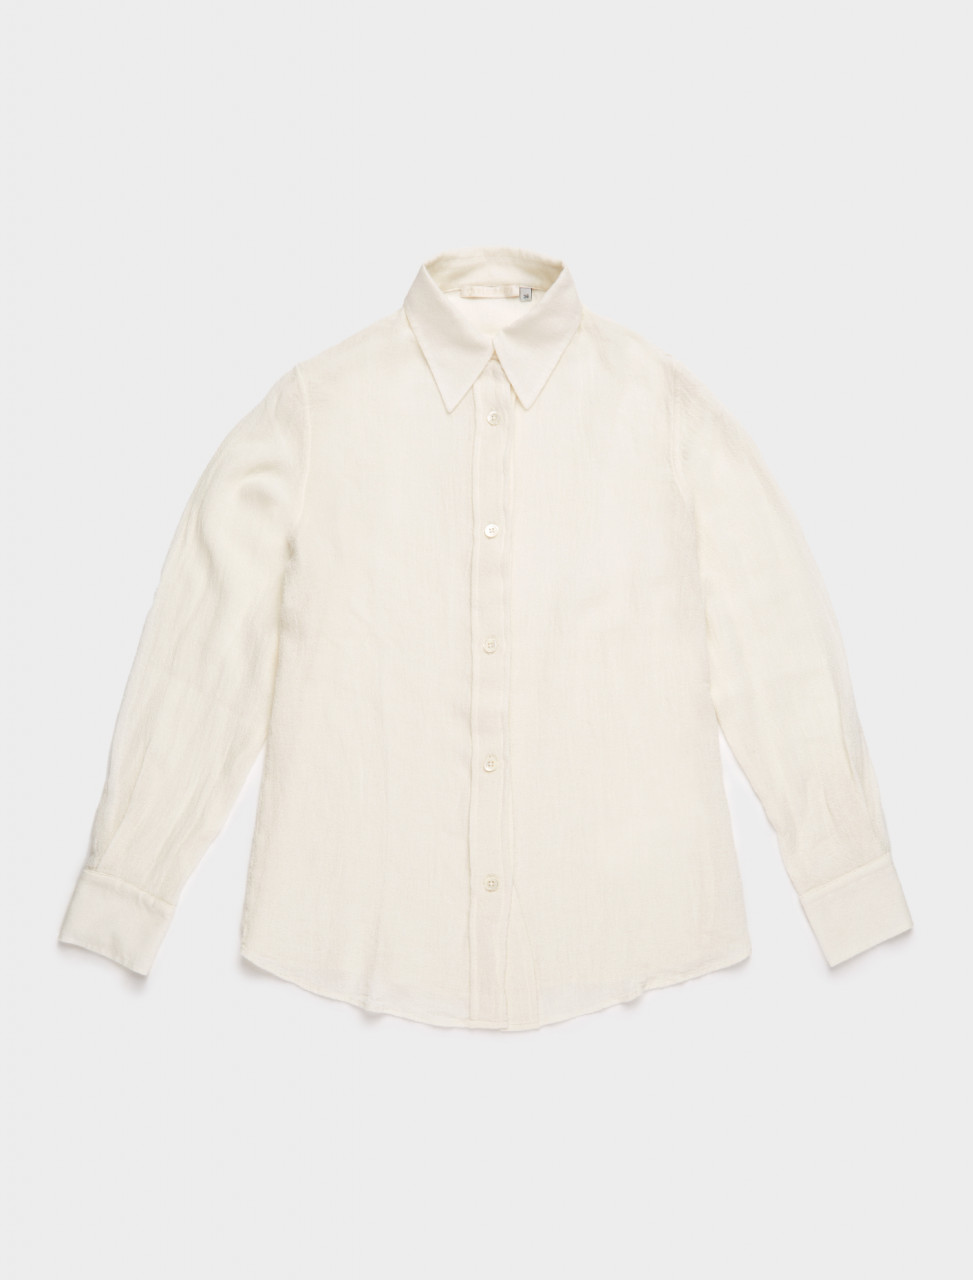 150-W42027LW OUR LEGACY 70S LINE SHIRT WHITE RAW VISCOSE